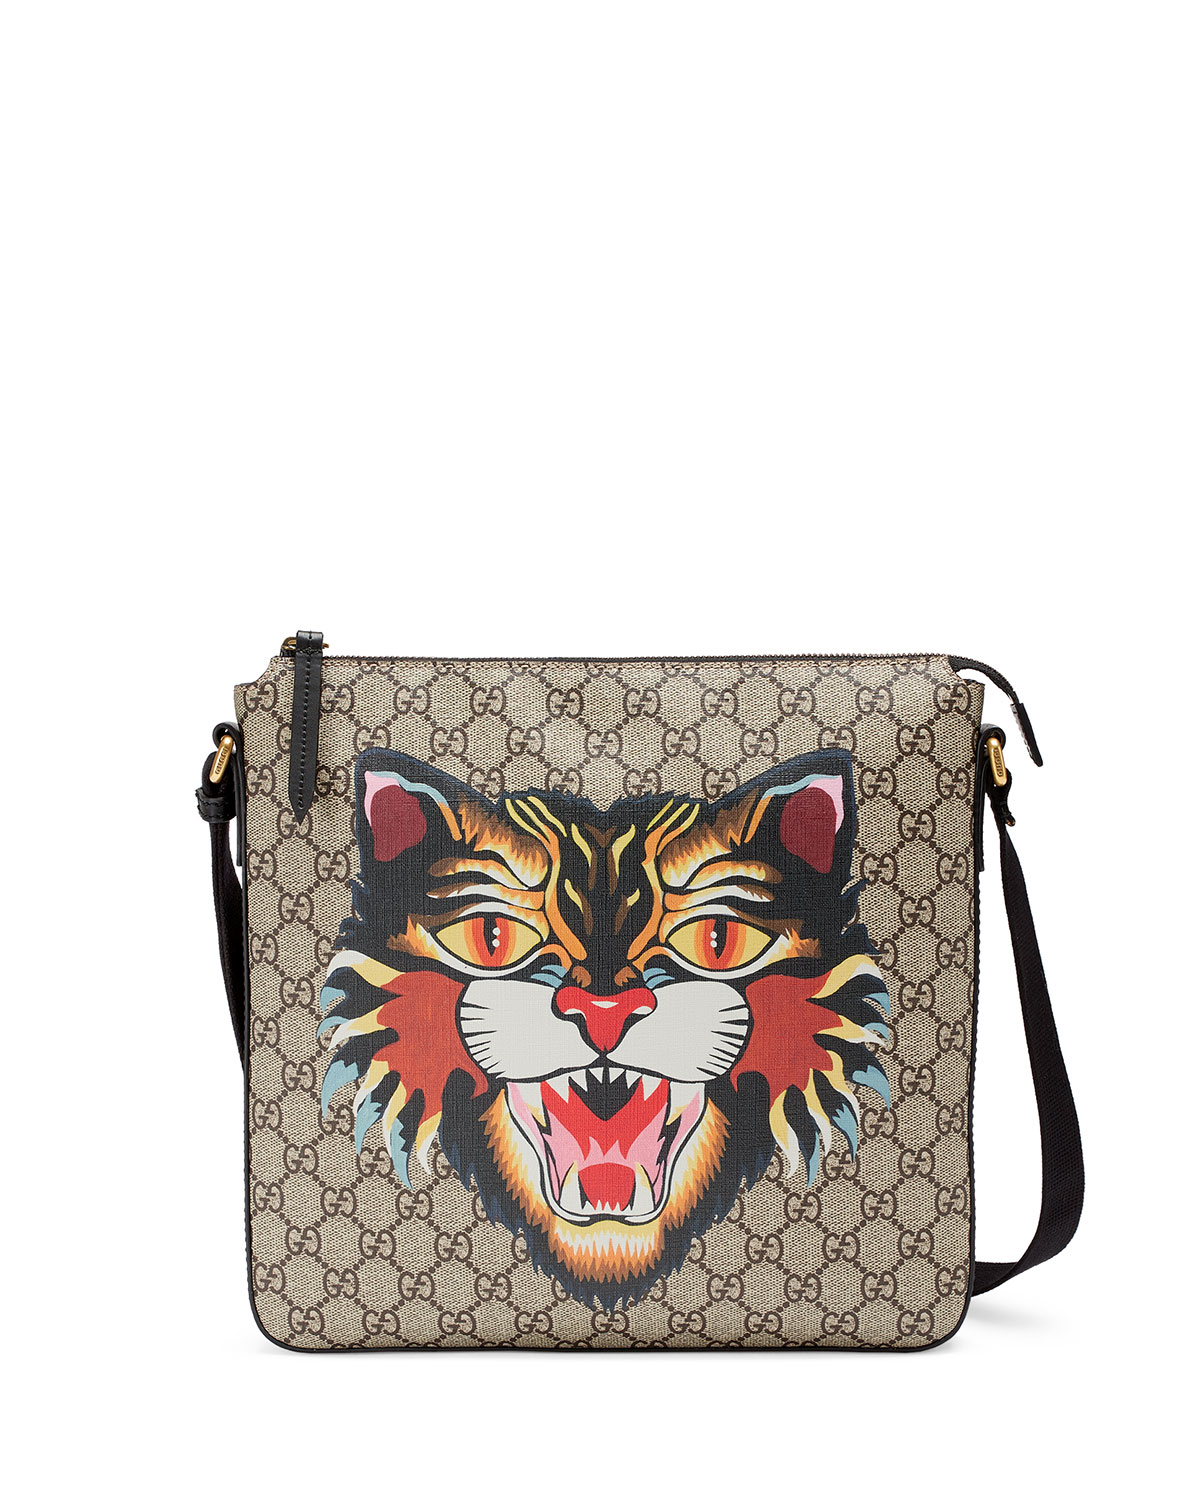 423cef0d7285 Gucci Angry Cat GG Supreme Messenger Bag | Neiman Marcus